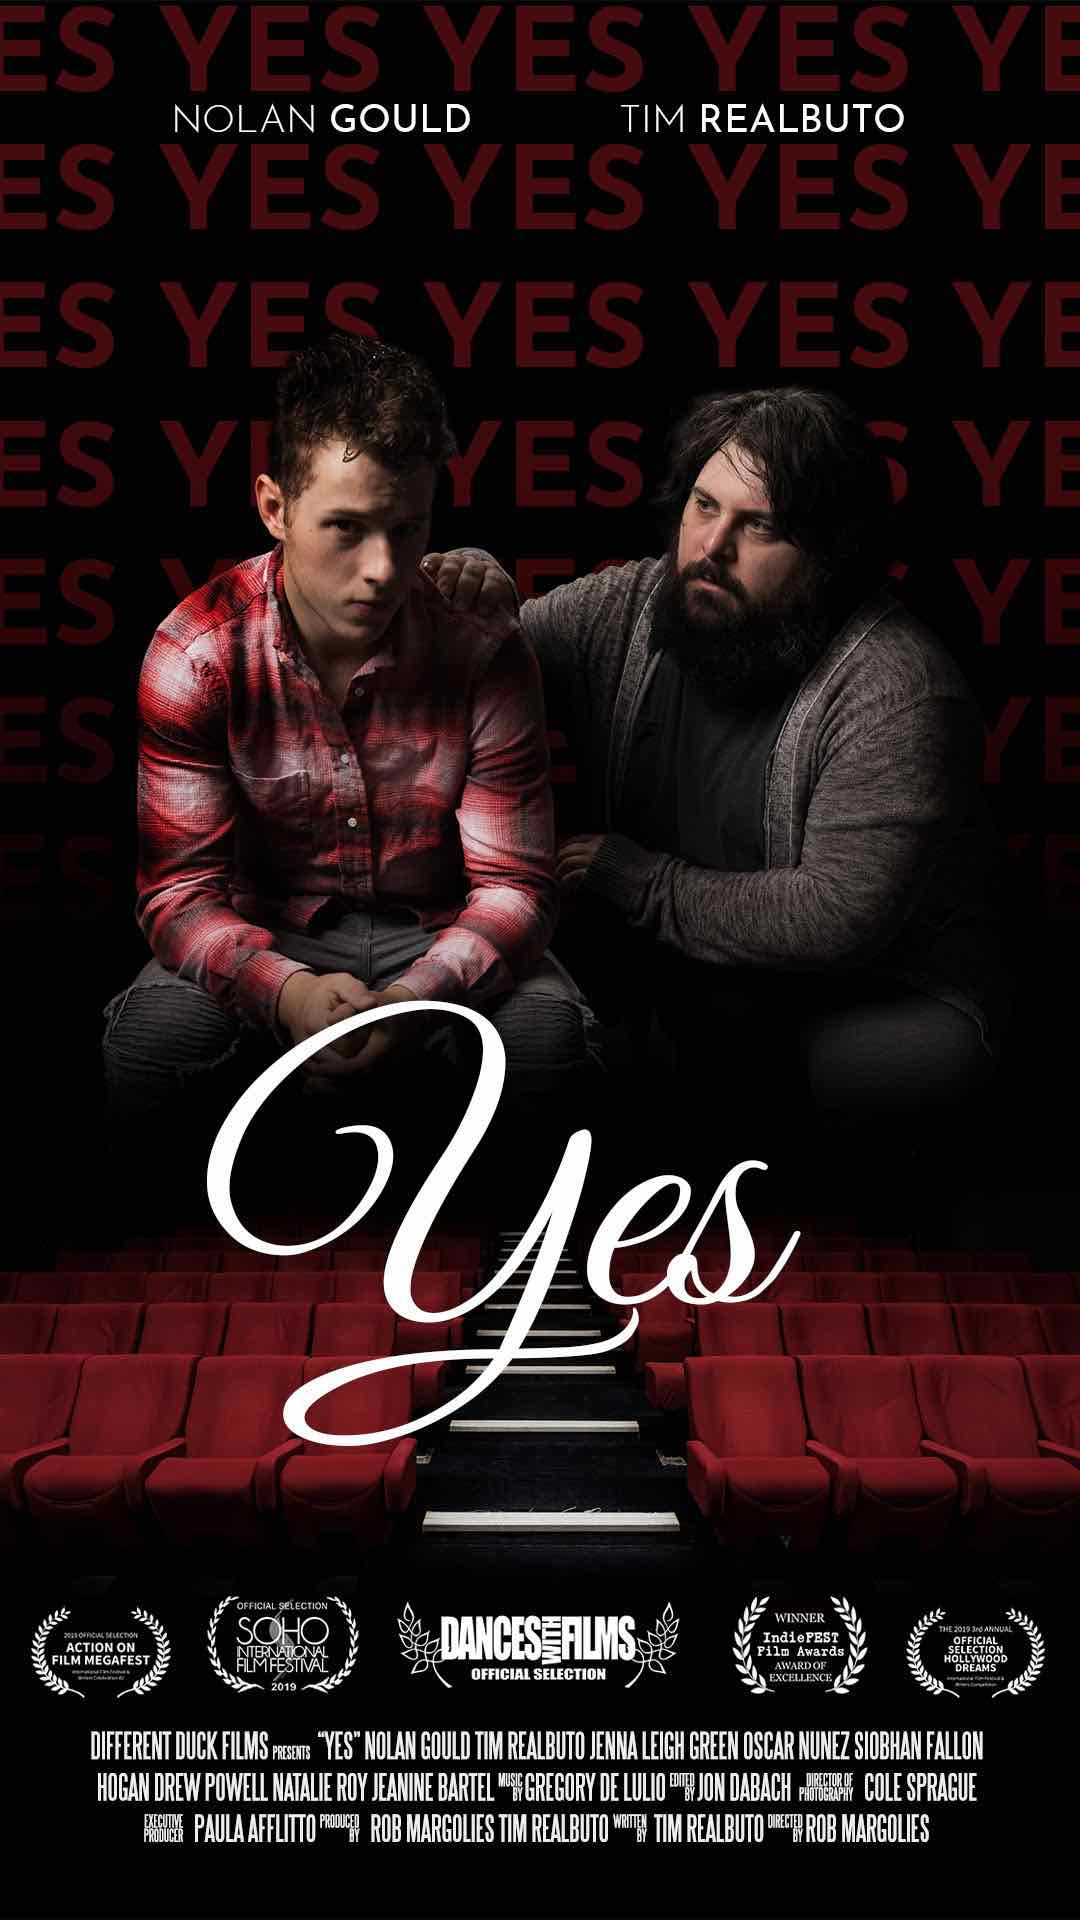 Get ready to watch some excellent cinema this weekend: 'Yes' is premiering at Dances with Films tomorrow night in L.A., the 22nd of June.